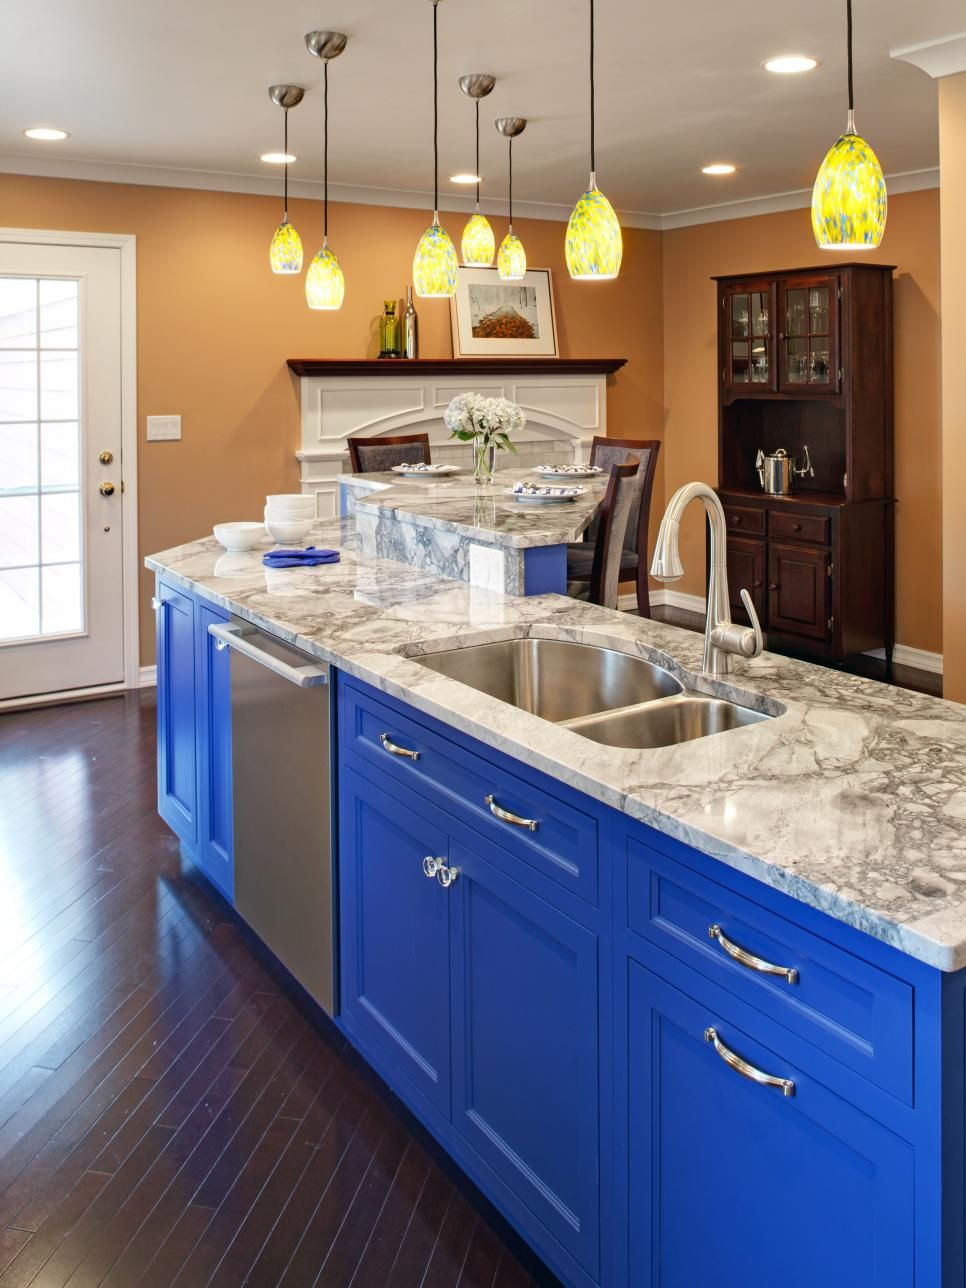 hgtv has inspirational pictures for cabinet color ideas that can help you creat with images on kitchen paint colors id=36878